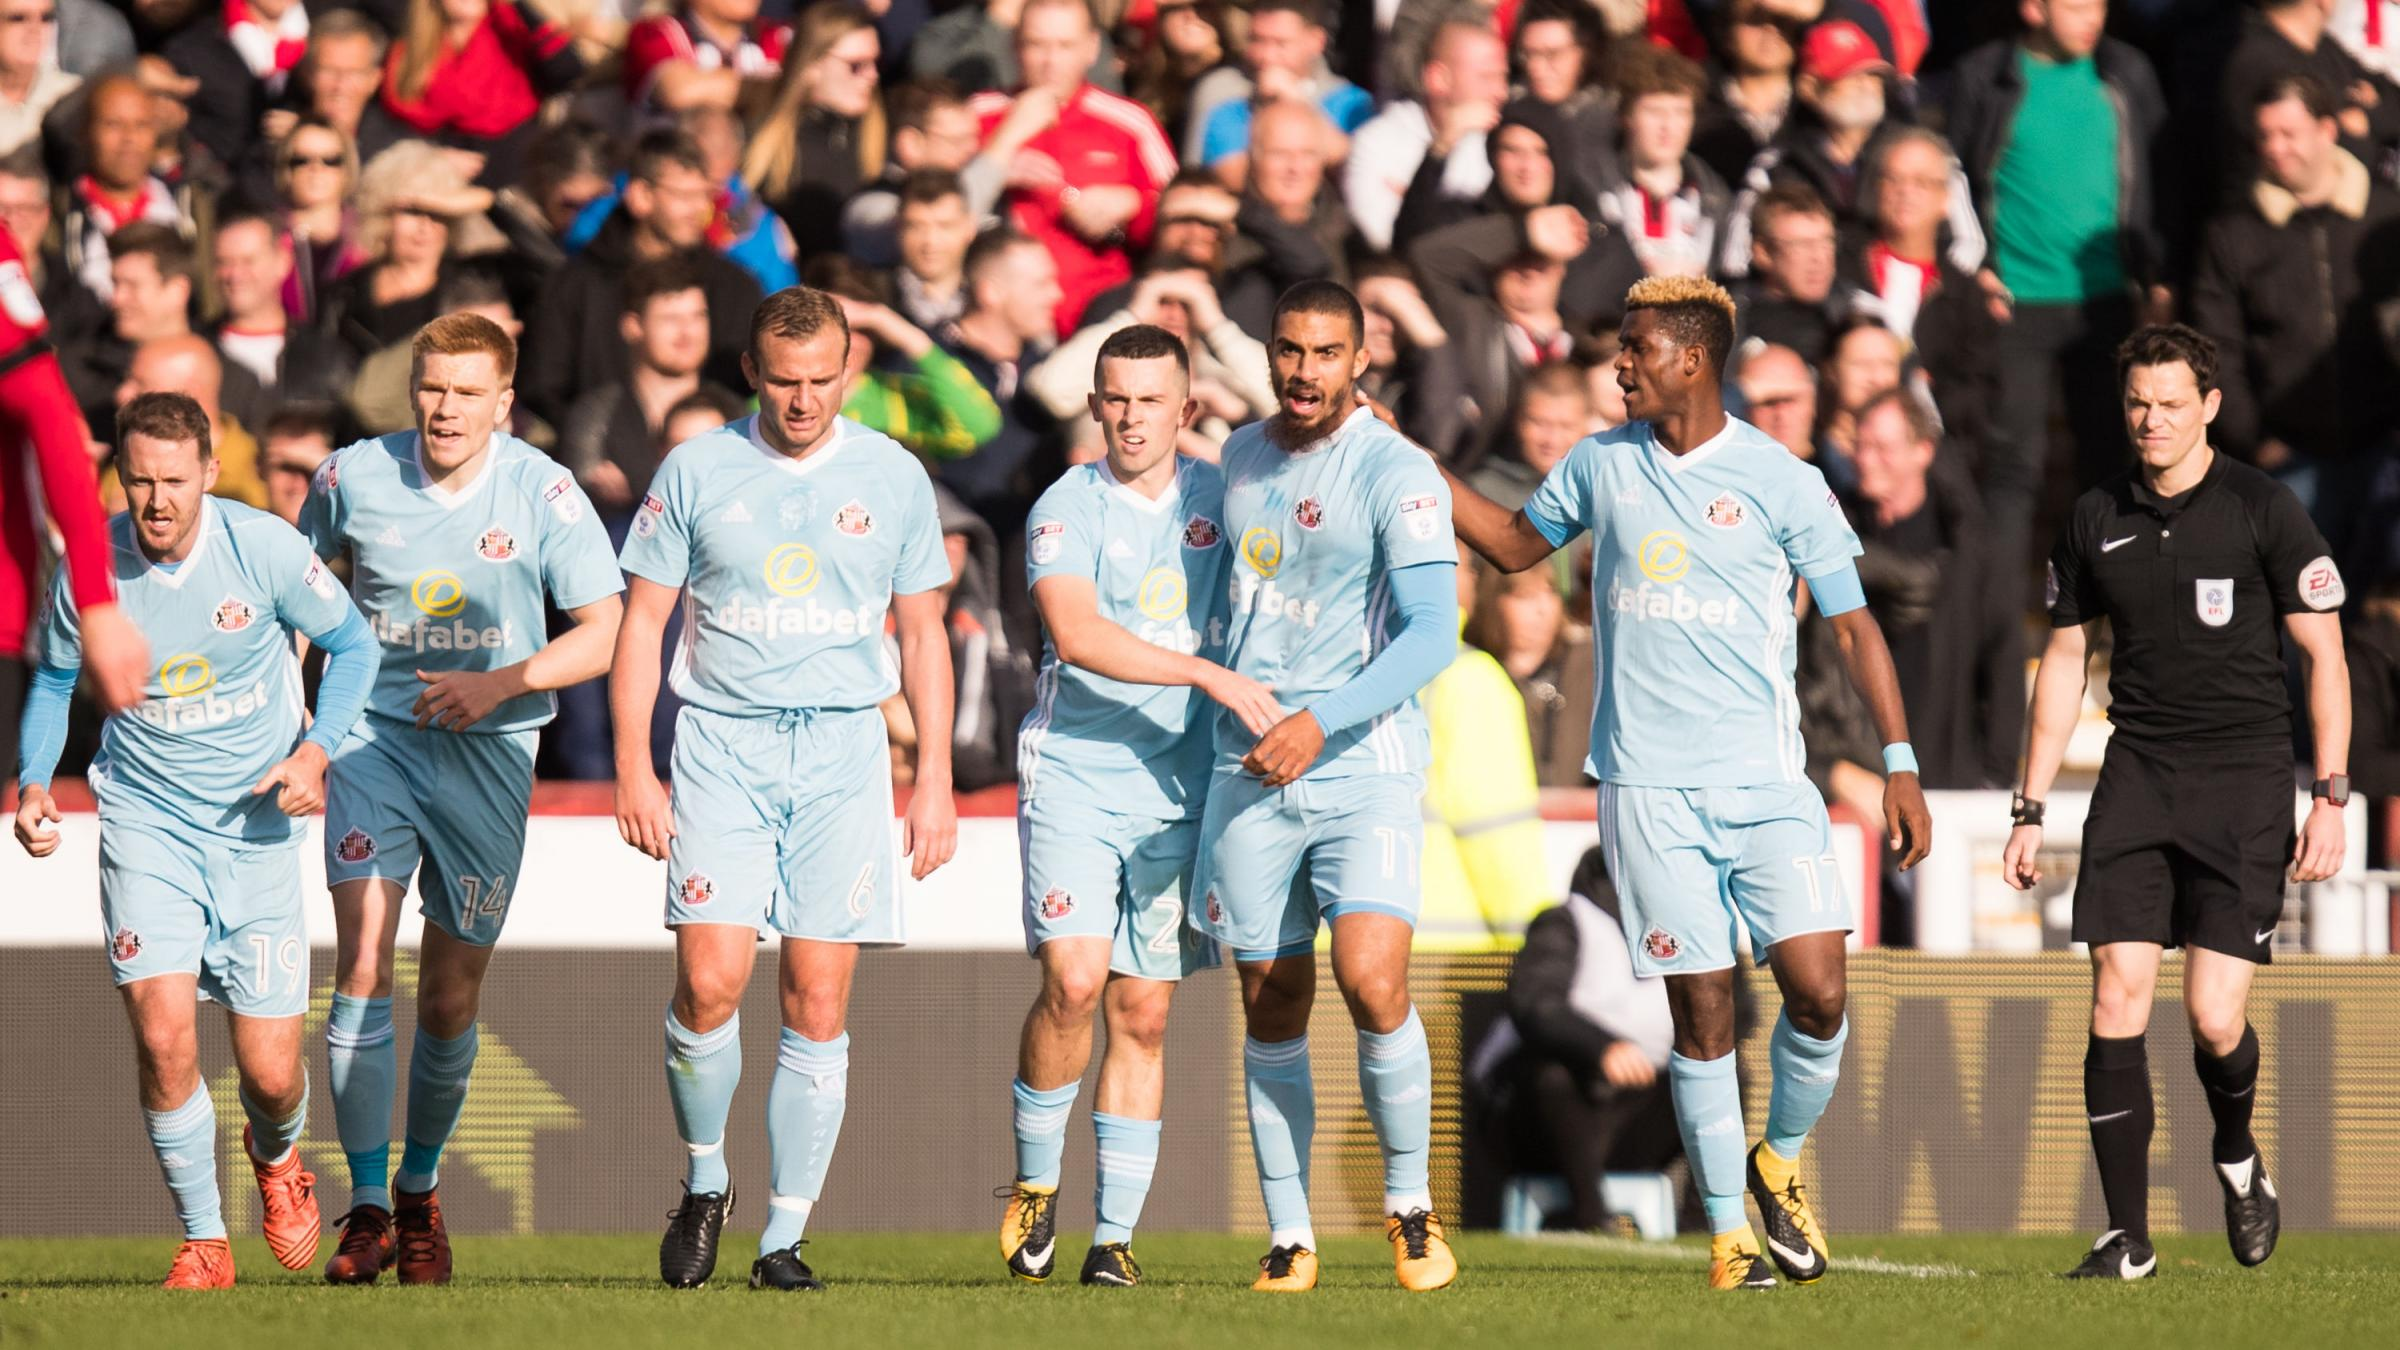 ALL SMILES: Sunderland's players celebrate a goal during their 3-3 draw with Brentford (Picture: Mark Fuller)